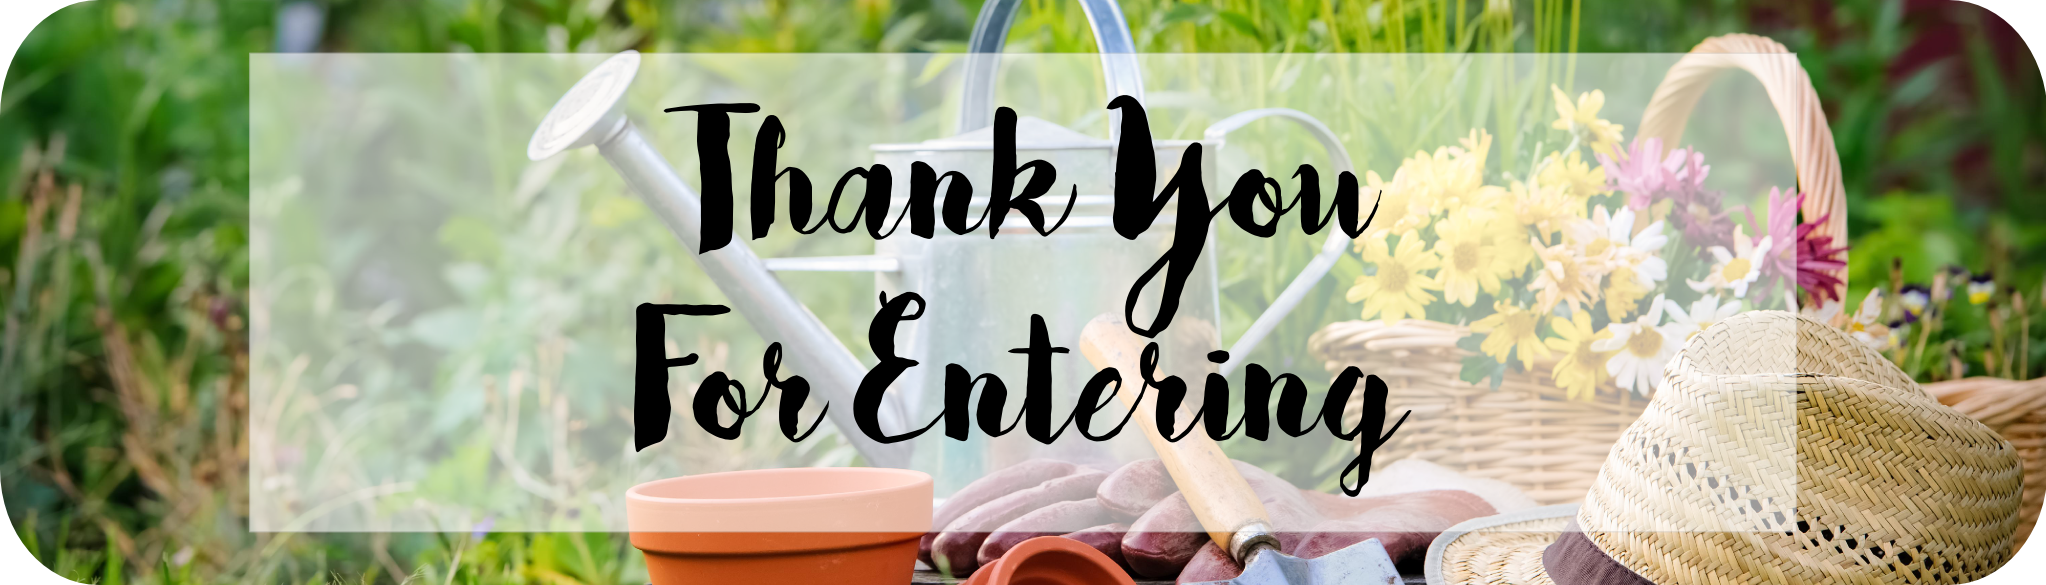 Win $6,000 Worth Of Gardening Services / Enhance Services / Landscape Construction